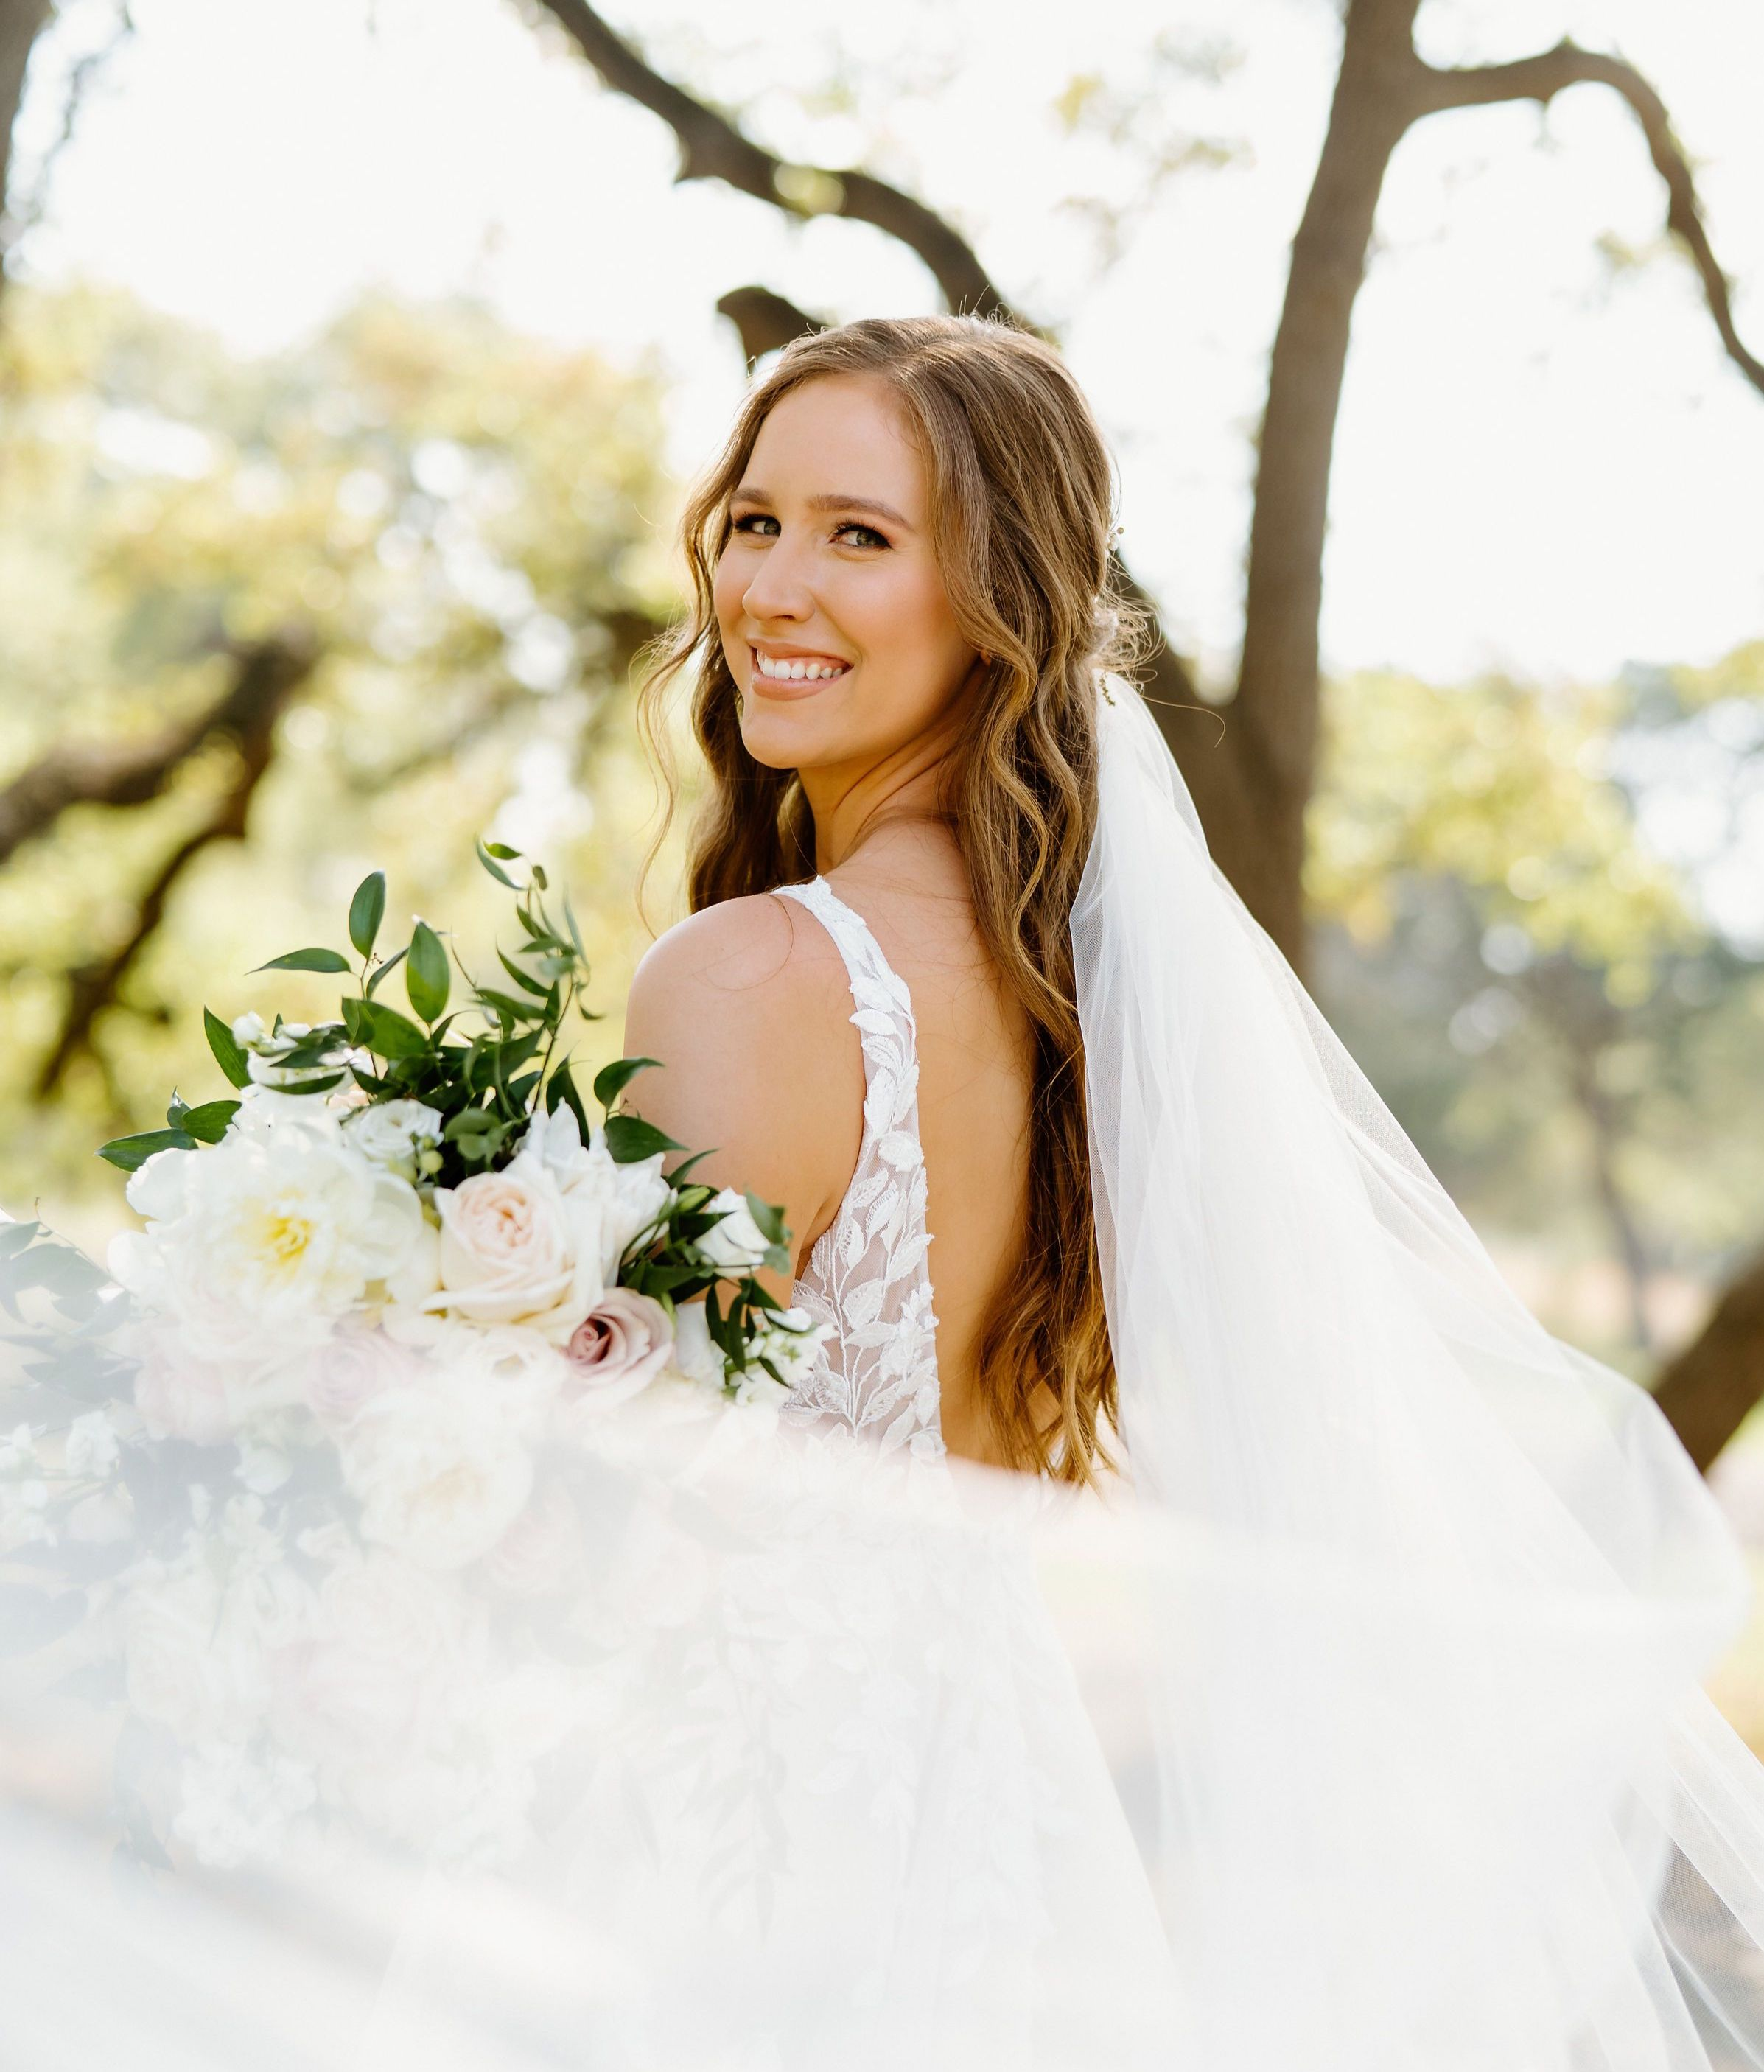 A beautiful bride is all smiles holding her bouquet as her cathedral length veil swirls out from behind her, catching the wind in a Texas Hill Country wedding designed by Scarlet Rose Events.